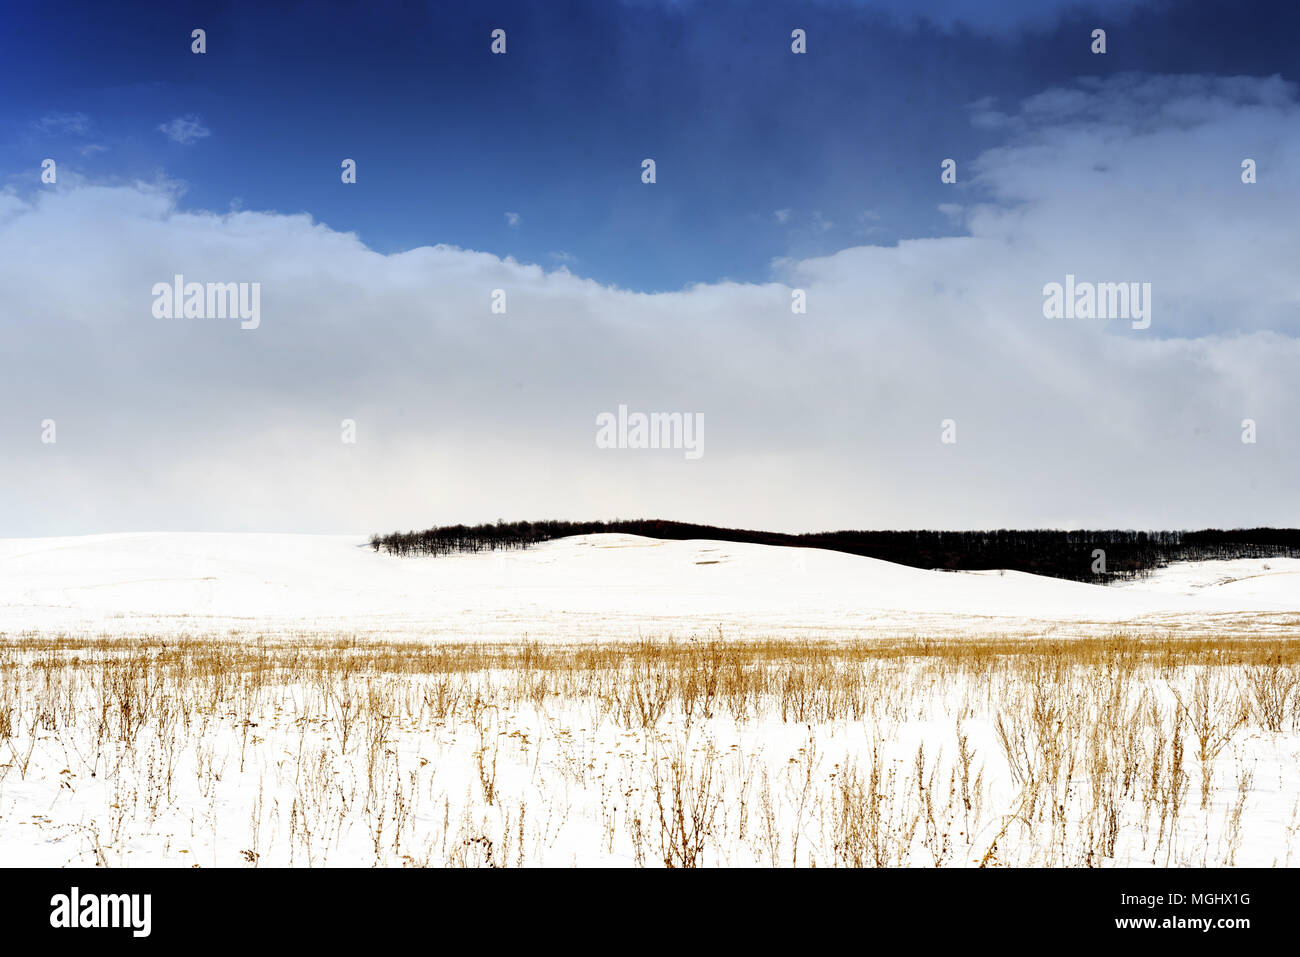 Winter snowscape of wild fields with weeds and large snow clouds and areas of blue sky with nobody in the wintry themed scene and landscape. Large for Stock Photo